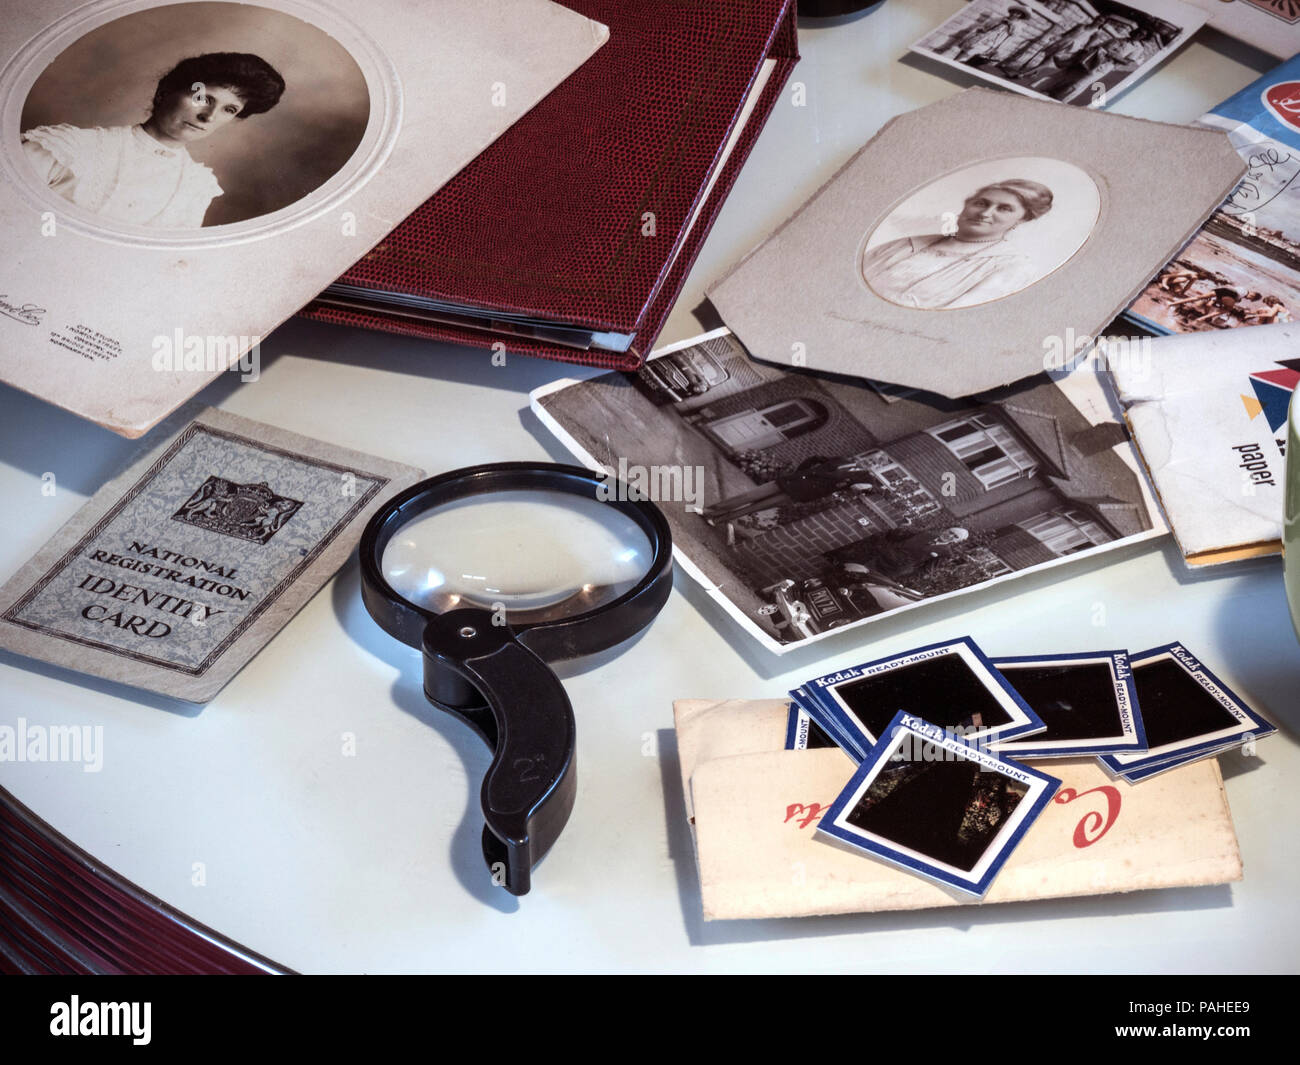 OLD FAMILY PHOTOGRAPHS sorting through historic family ephemera, documents, conventional film photography, photo albums and colour transparencies with magnifying glass - Stock Image